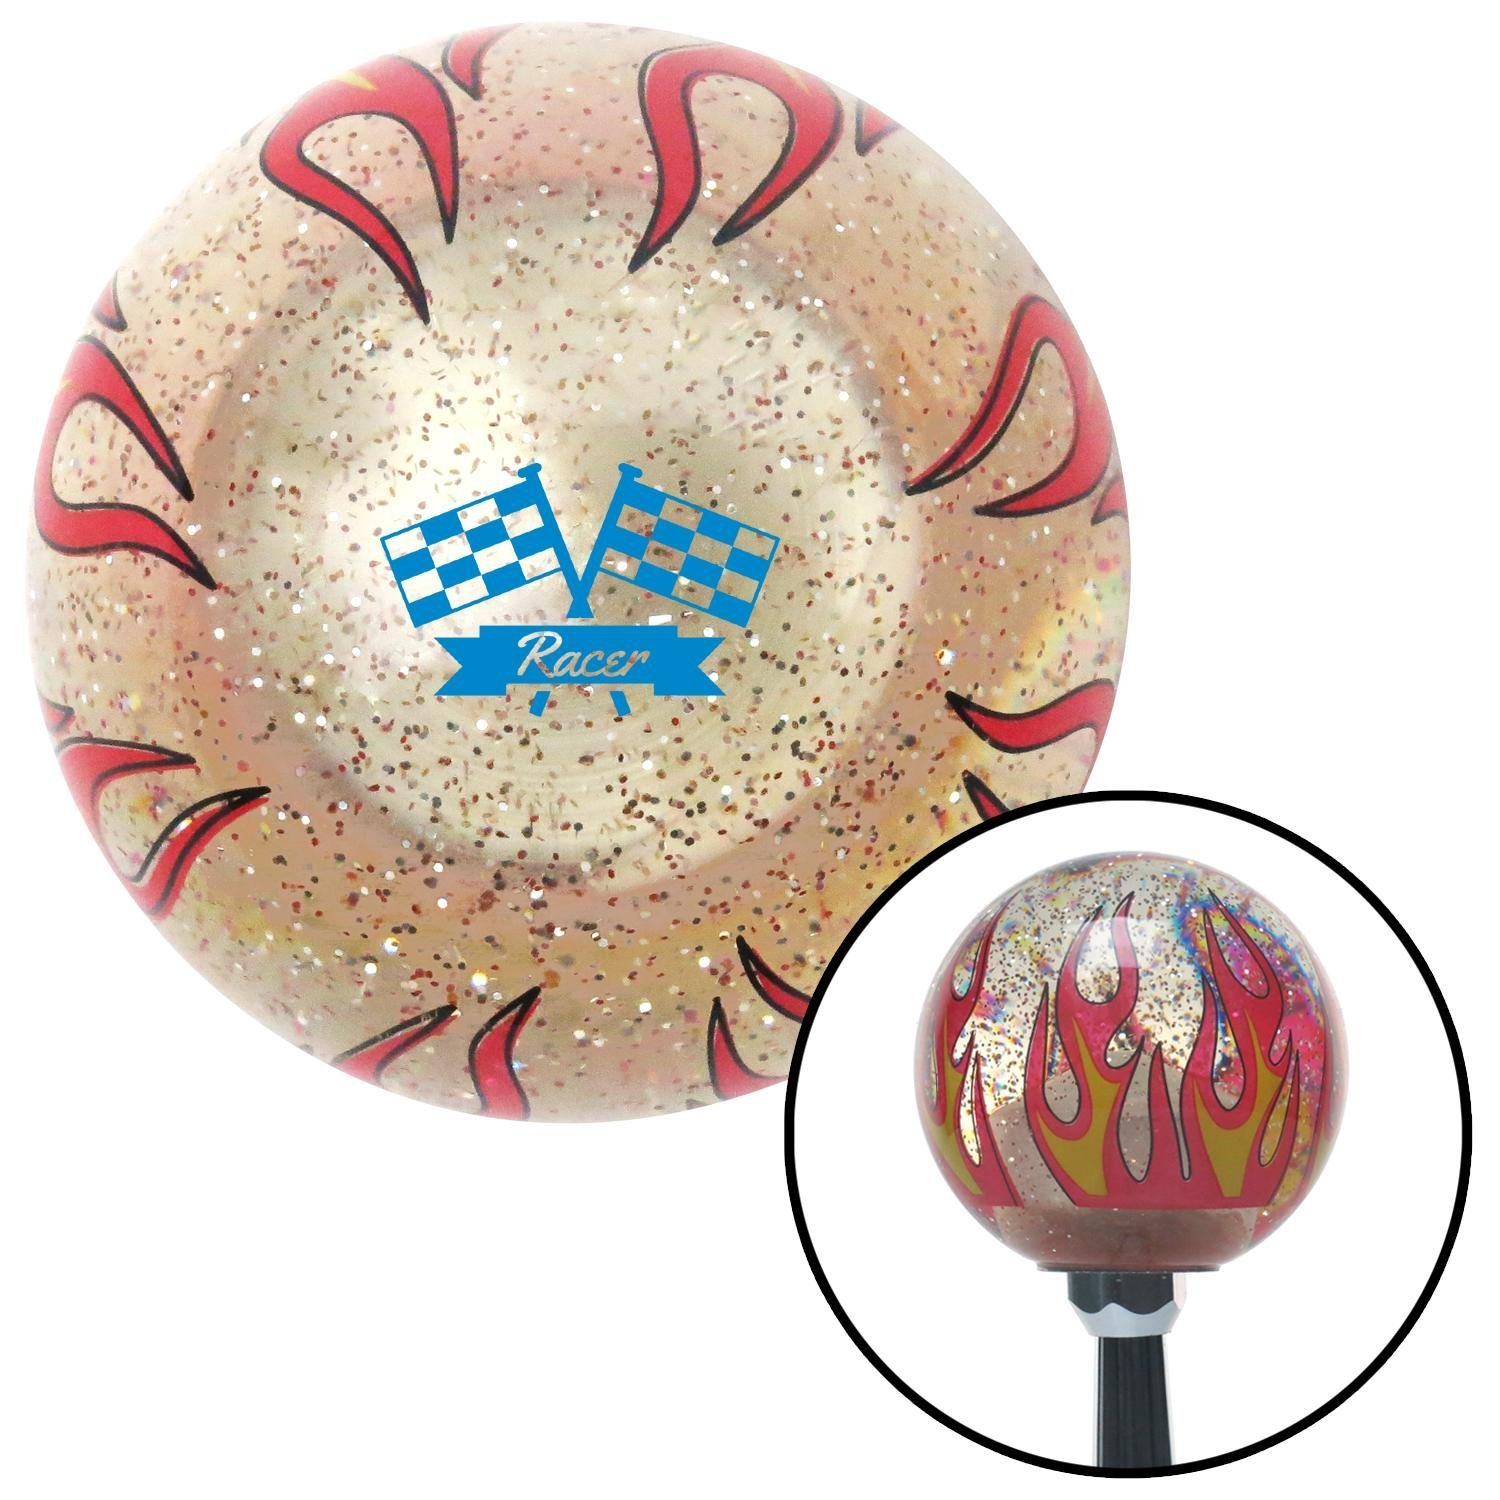 American Shifter 295714 Shift Knob Blue Racer Clear Flame Metal Flake with M16 x 1.5 Insert